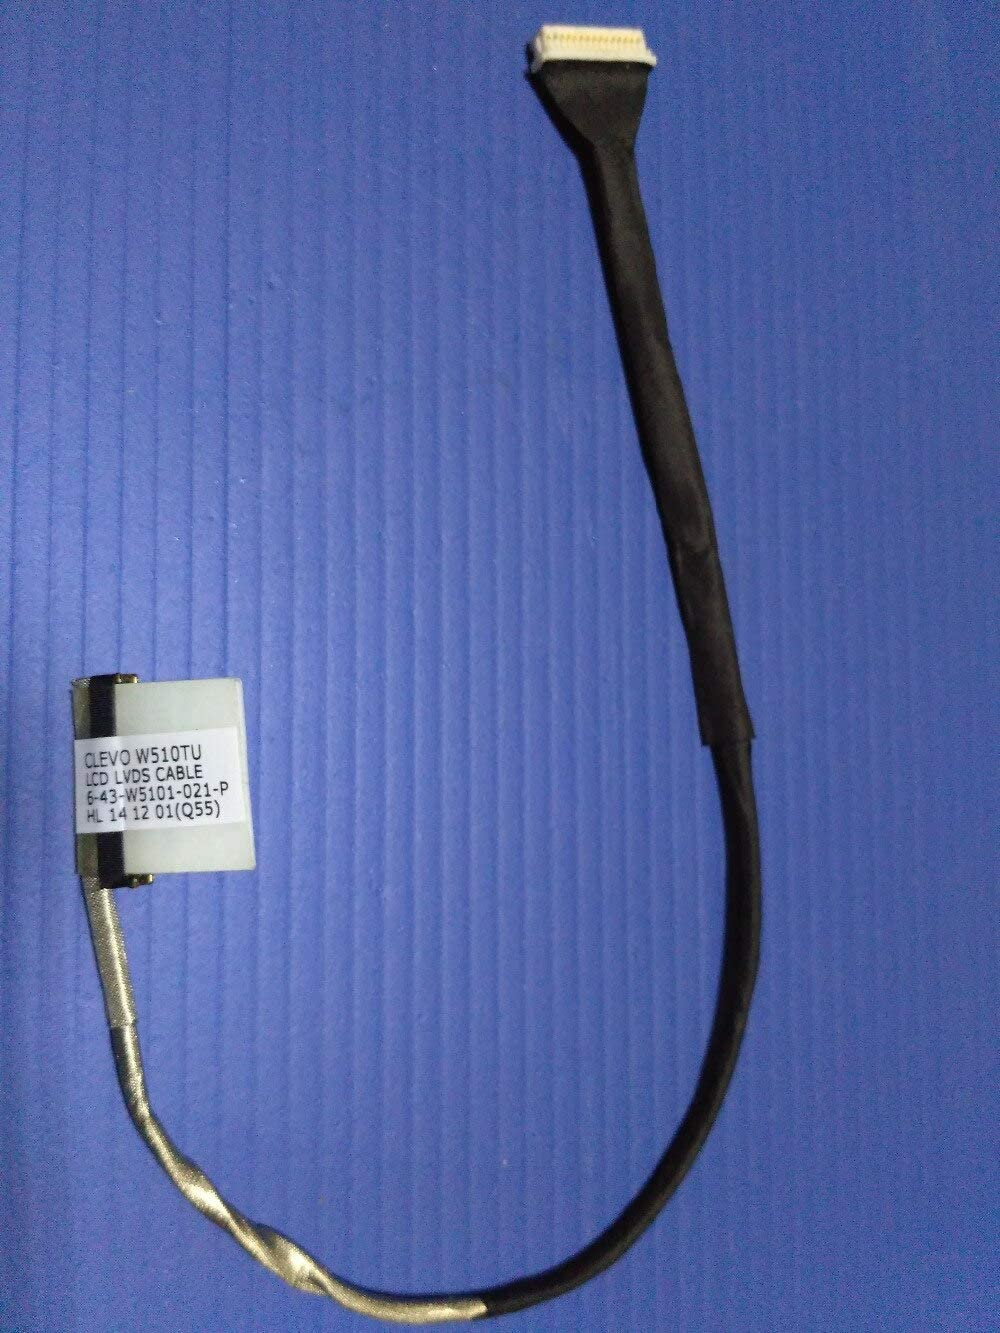 Occus - Cables Popular brand New Original clevo Max 43% OFF 6- lvds W510TU Cable LCD